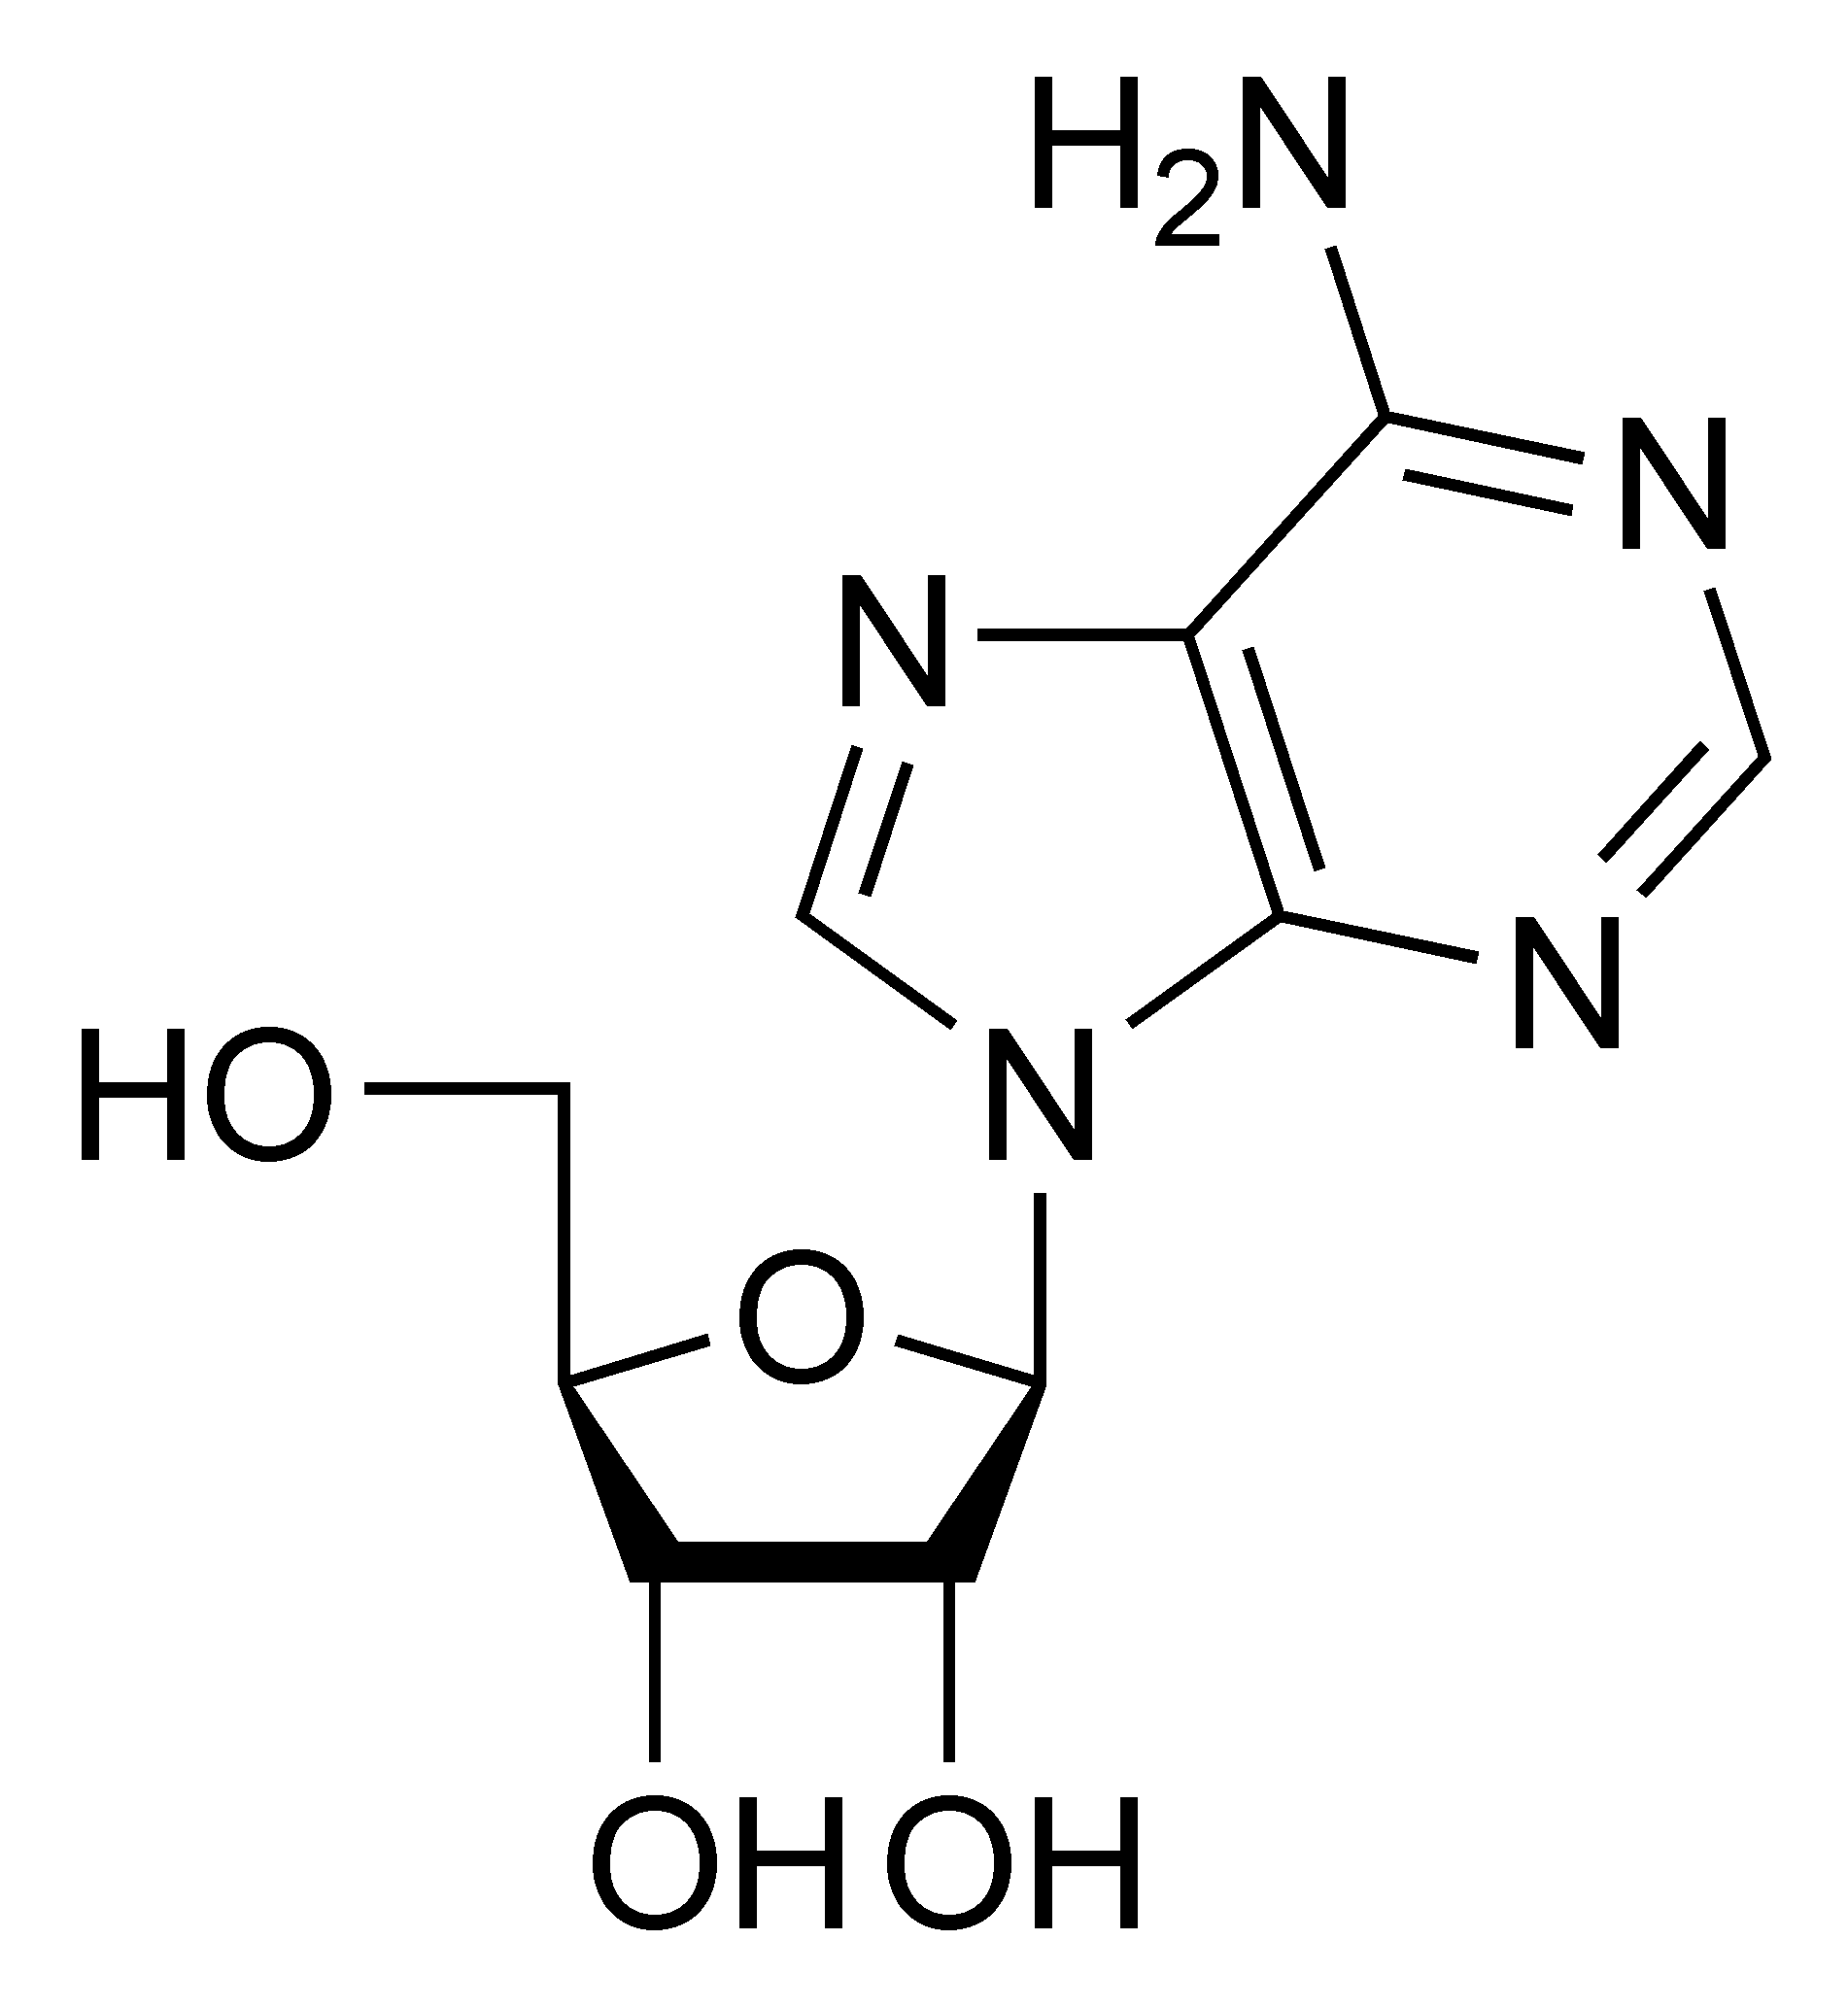 Chemical structure of adenosine